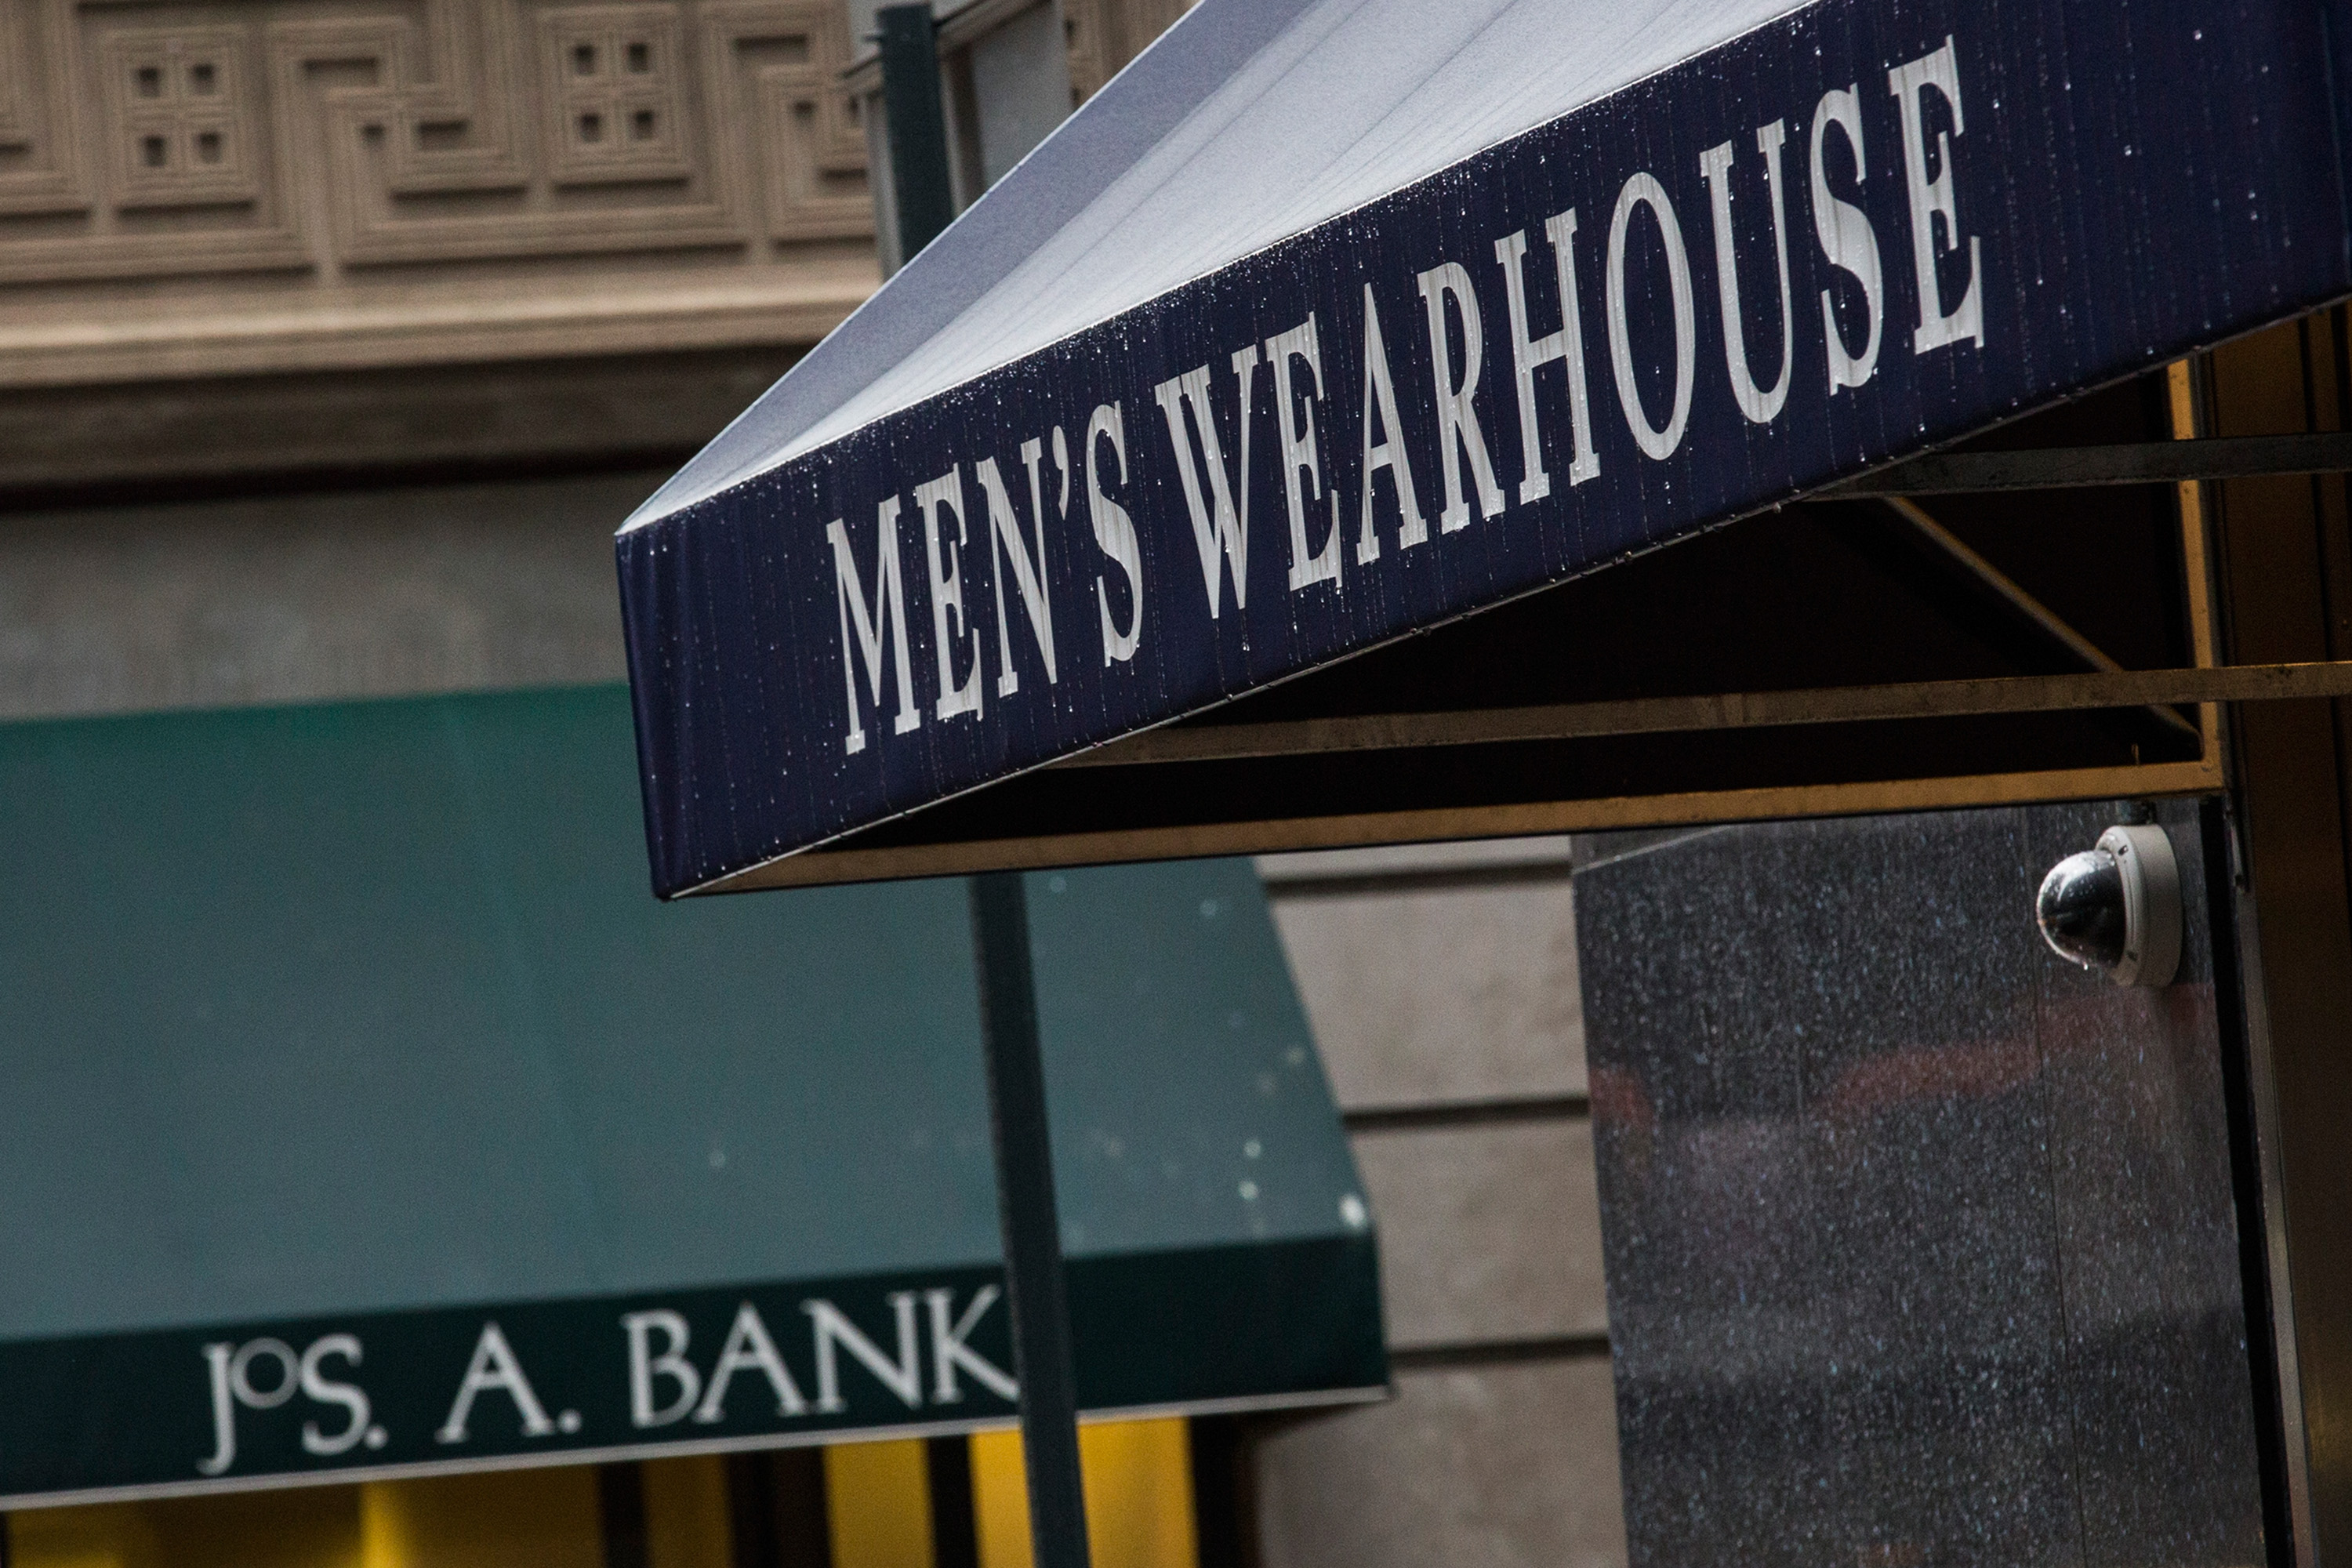 Men's Warehouse and Jos. A Bank storefronts are seen next to each other on January 6, 2014 in New York City. Men's Warehouse is currently pursuing a hostile takeover of competitor Jos. A. Bank, which also sells men's suits and buisness wear. (Photo by Andrew Burton/Getty Images)